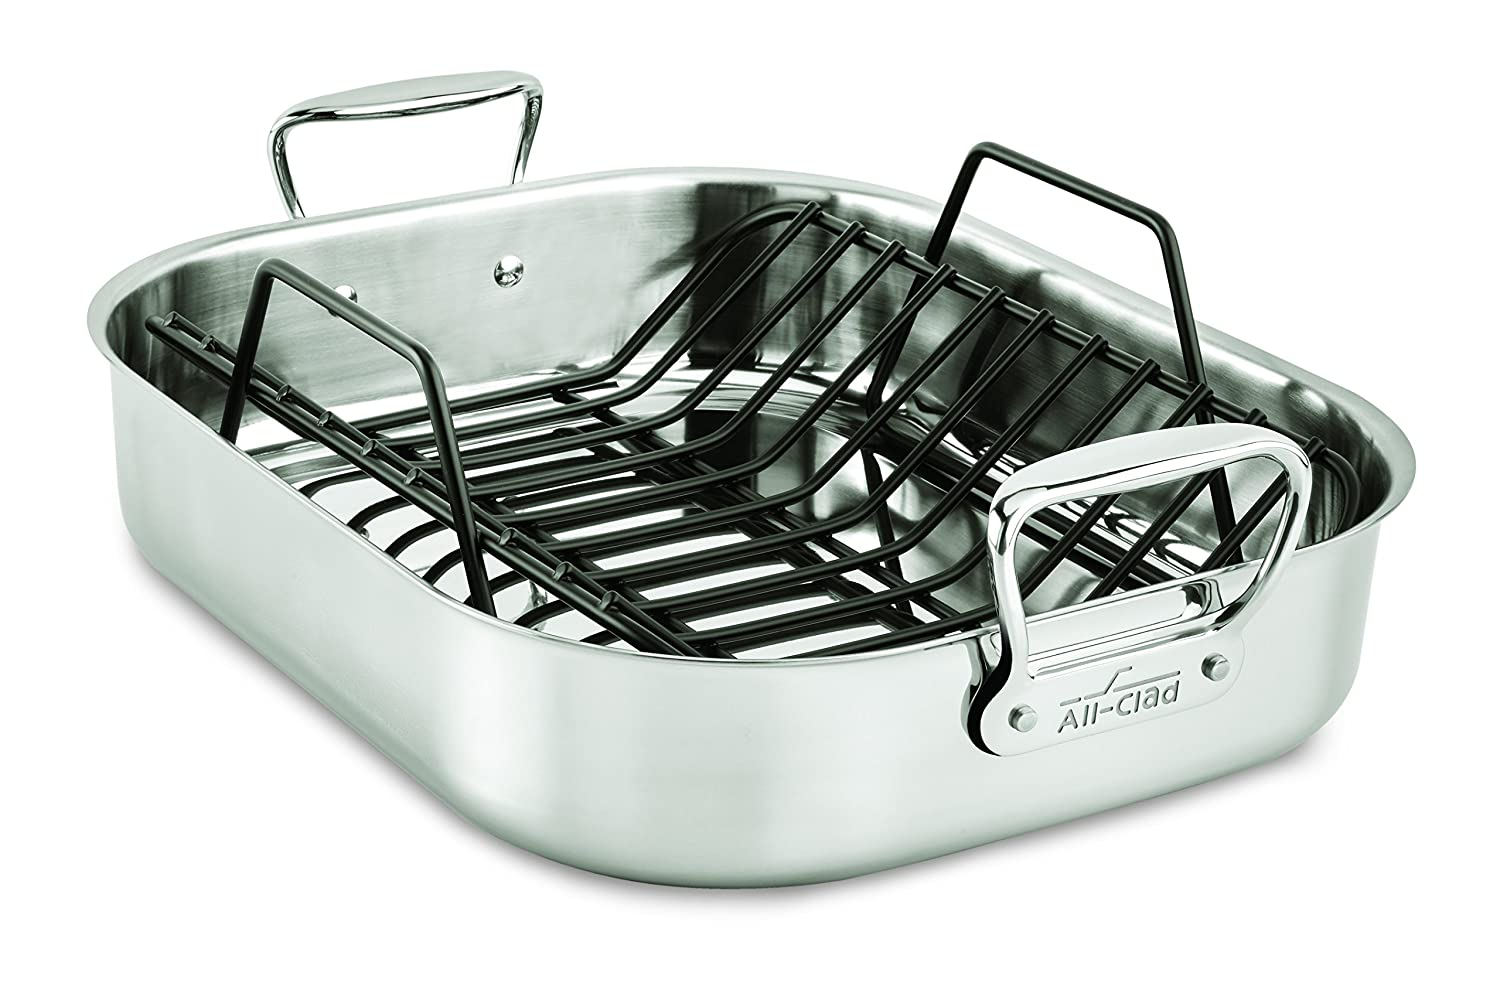 All-Clad 501631 Stainless Steel Large Roti Combo with Rack, Silver 2100095738